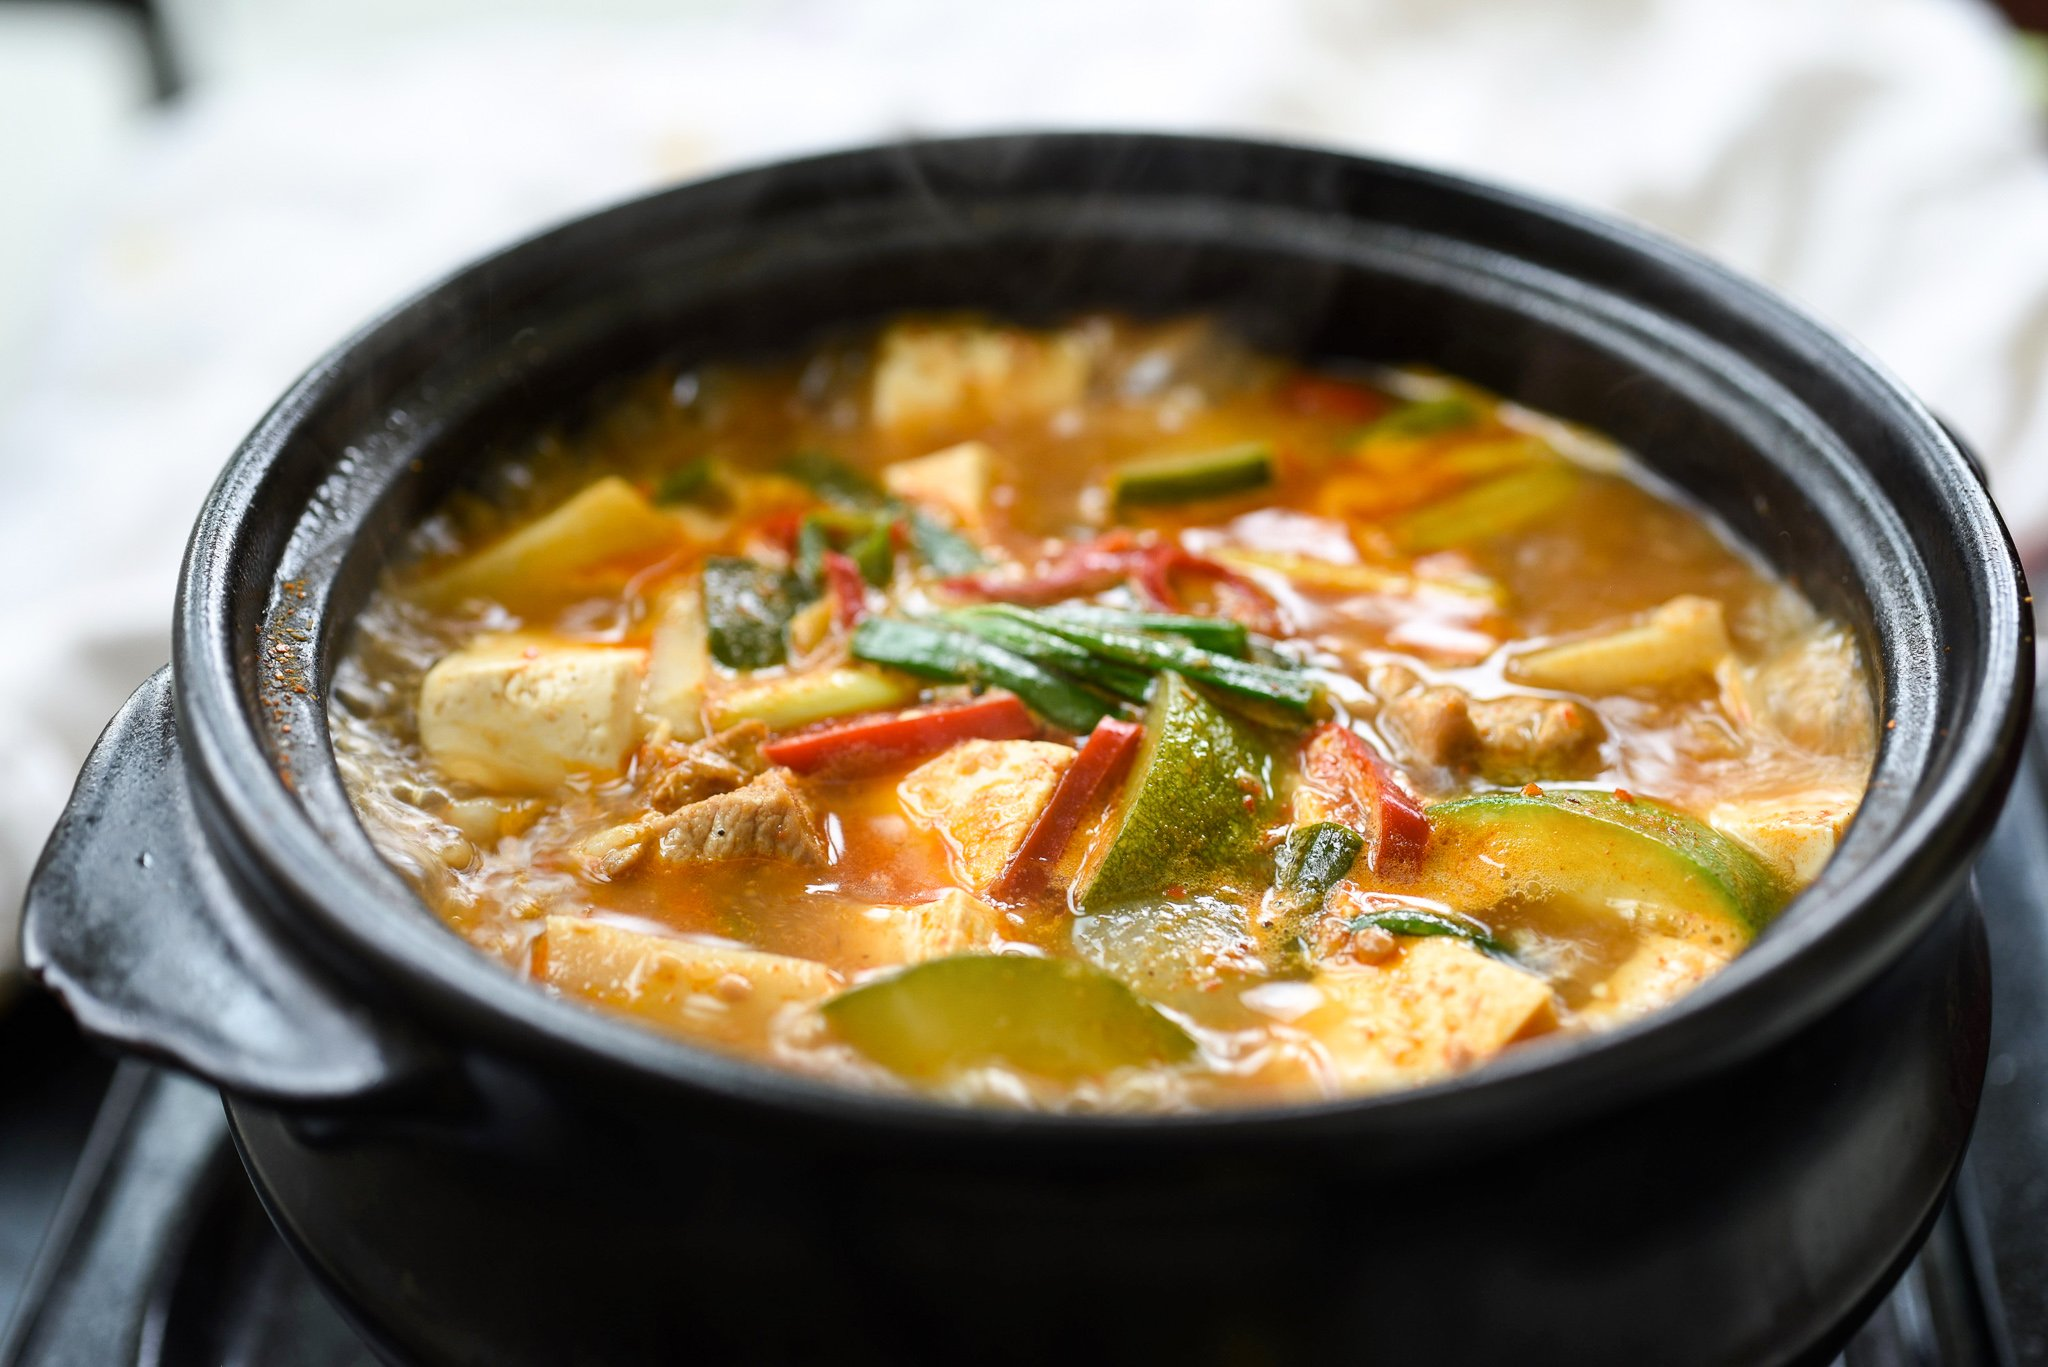 DSC 0672 - Doenjang Jjigae (Korean Soybean Paste Stew)